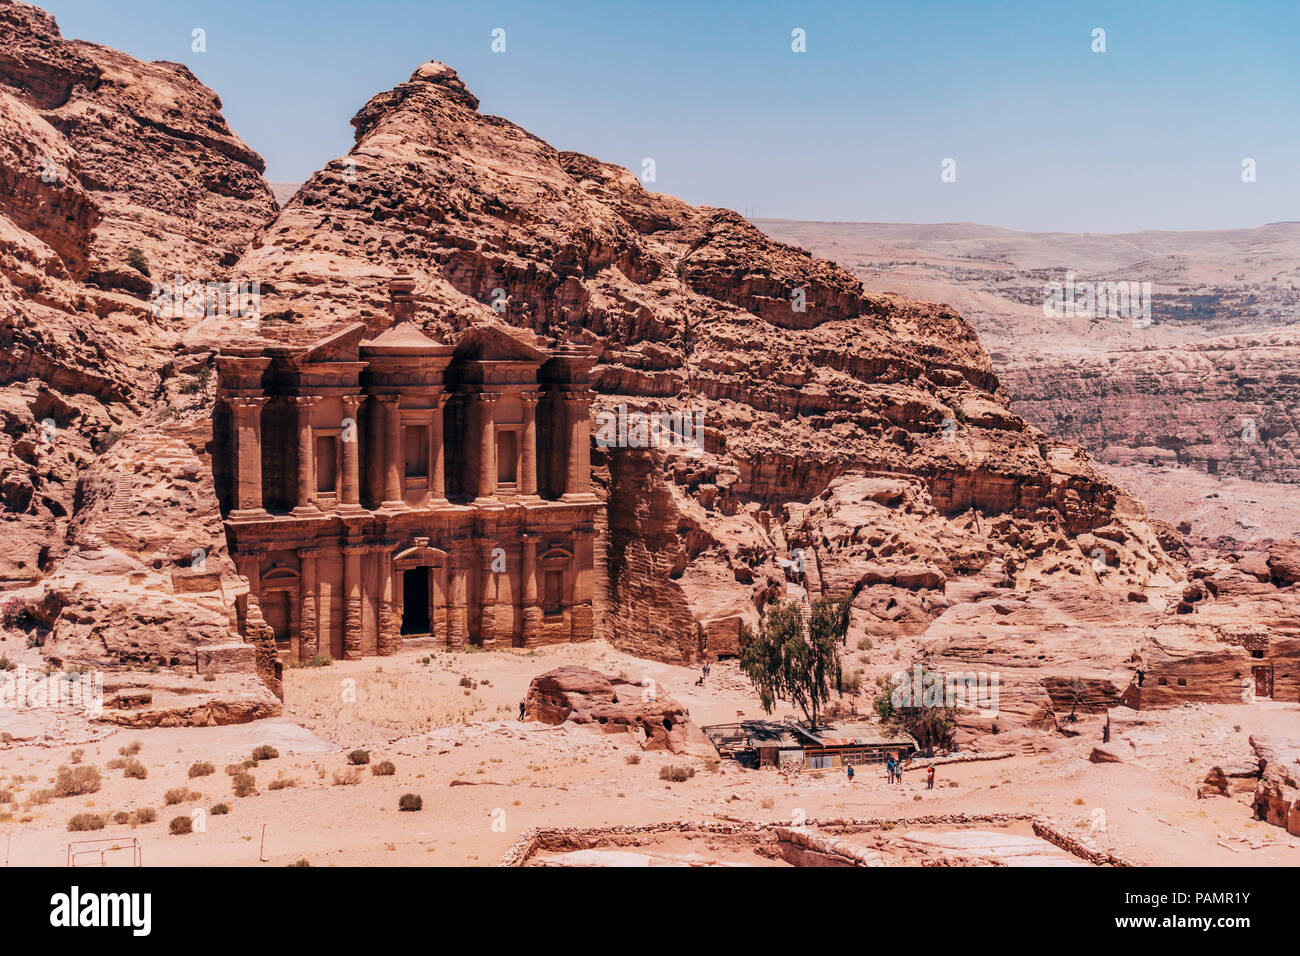 looking down at the Ad-Deir Monastery carved into the side of layers of rock in the Lost City of Petra, Jordan - Stock Image